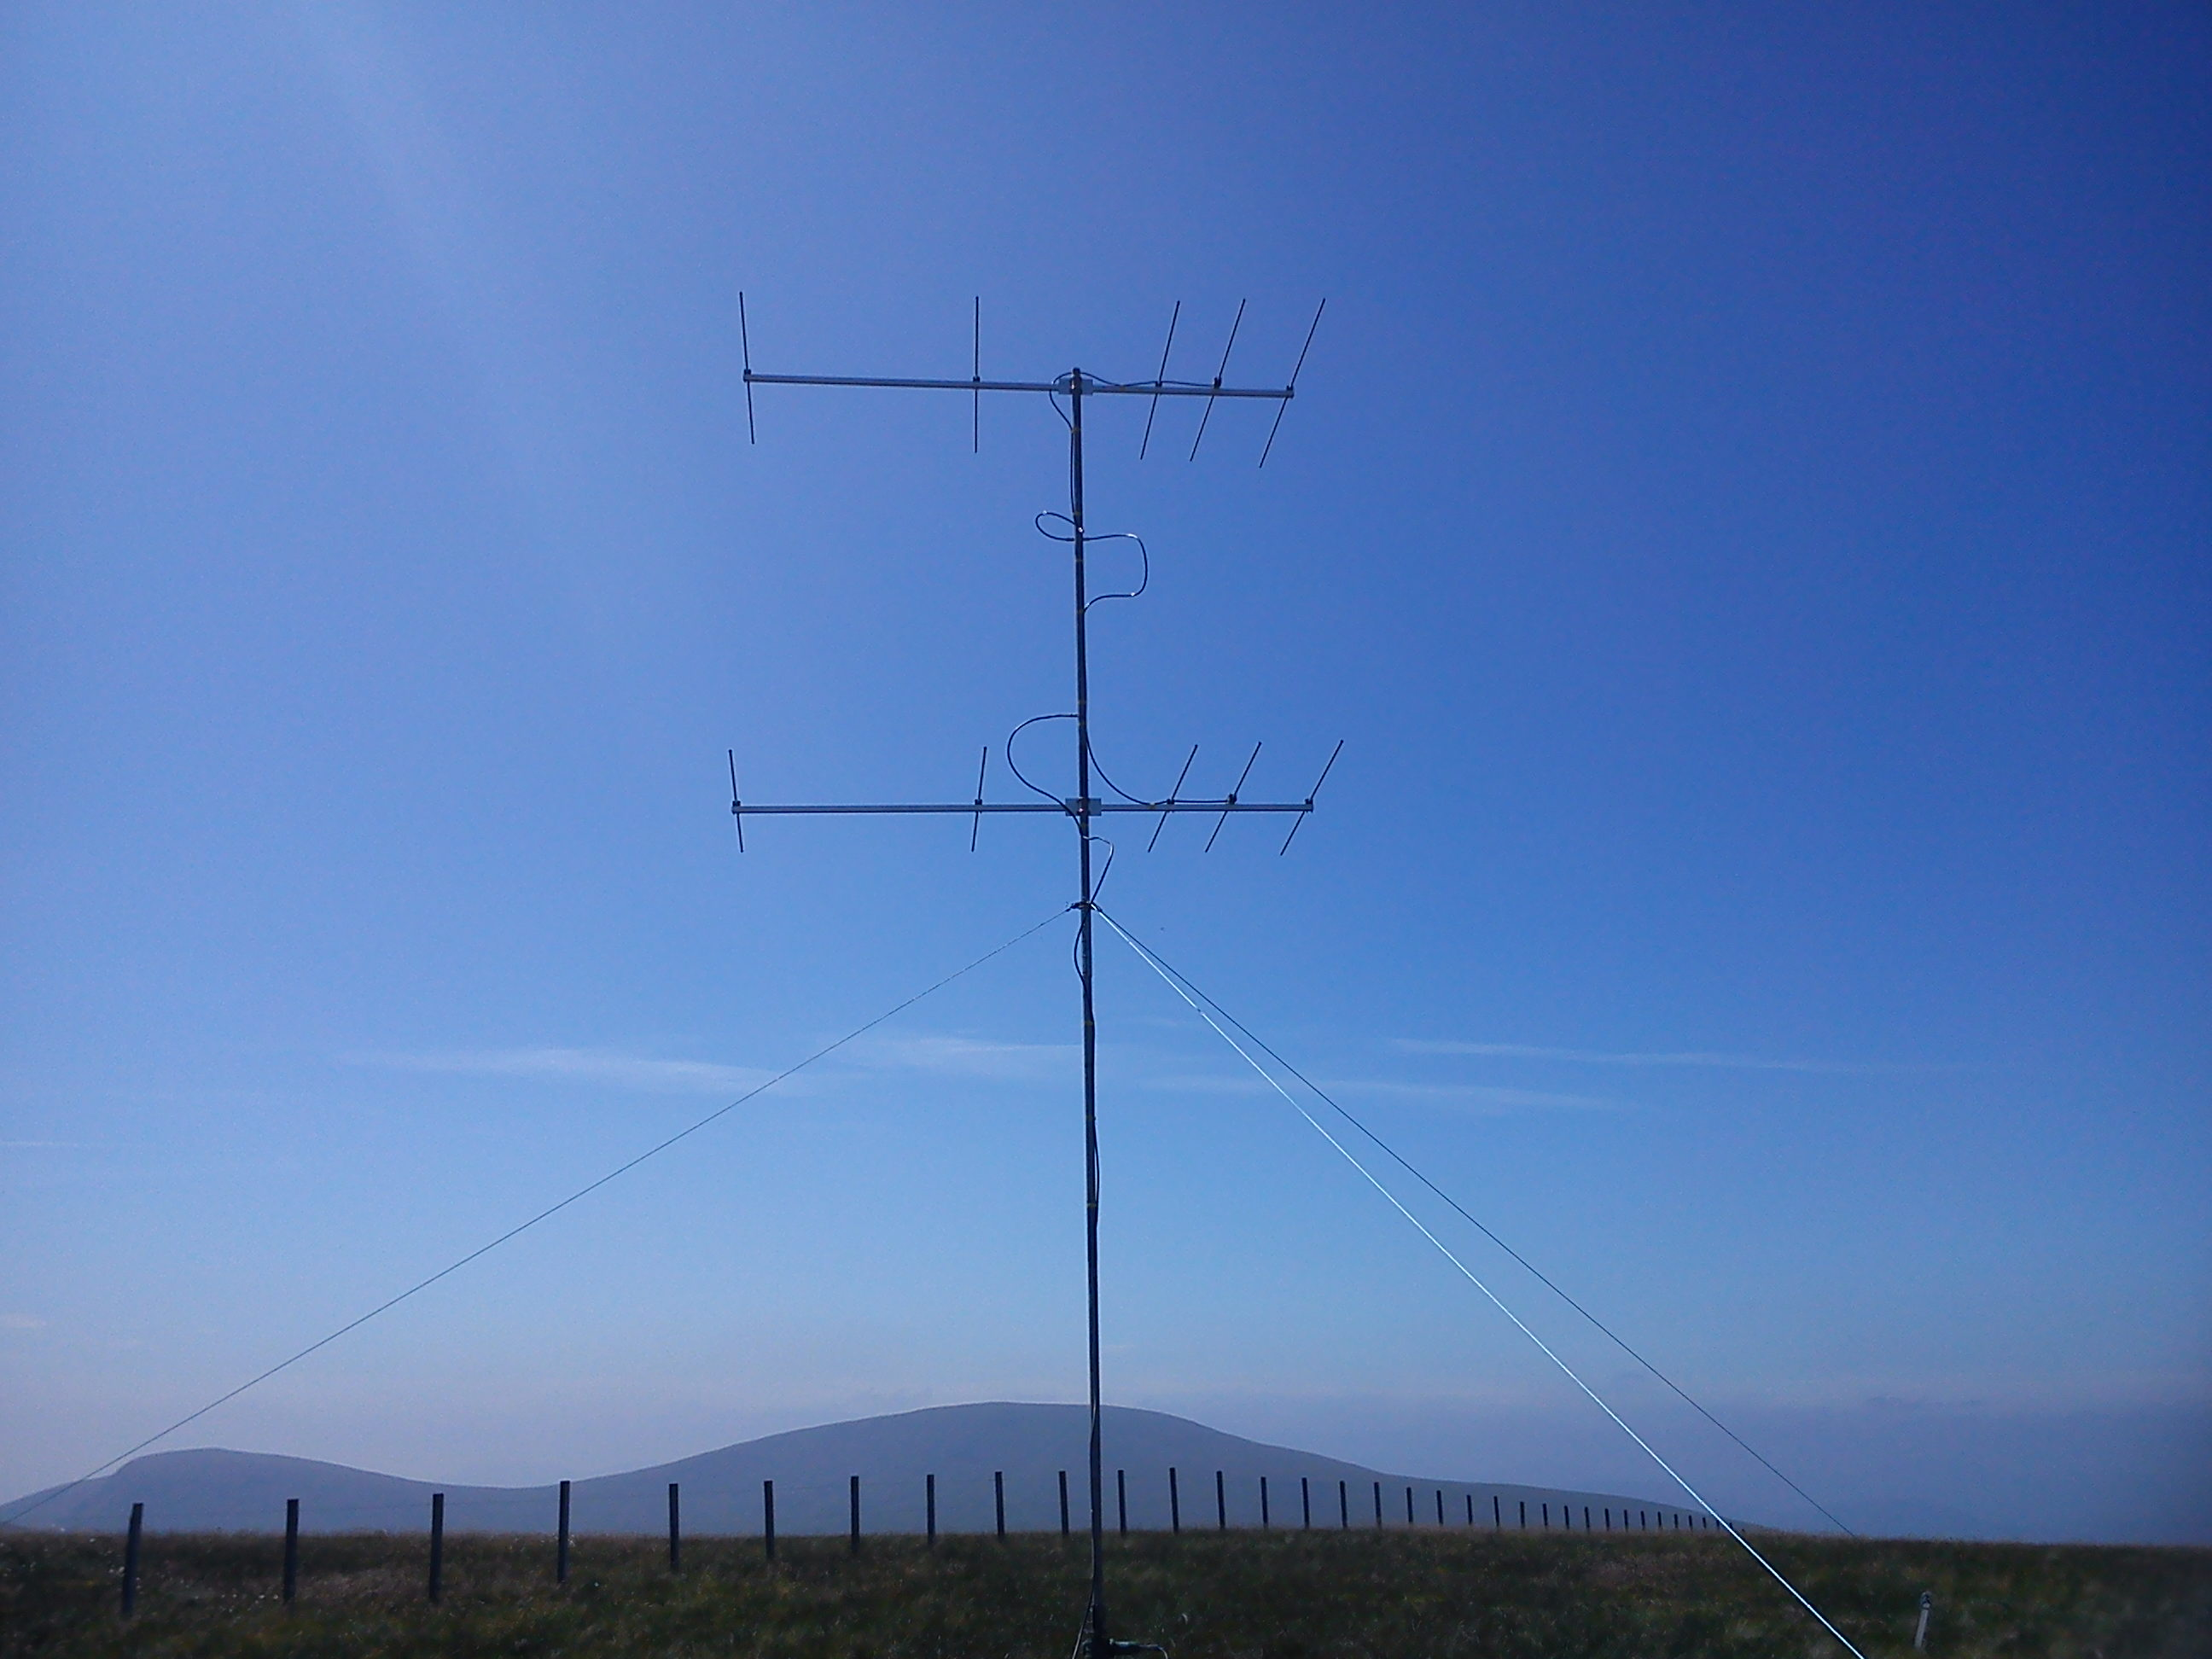 4M5N50-HD x 2 antennas in use at GM6MD/P contest site